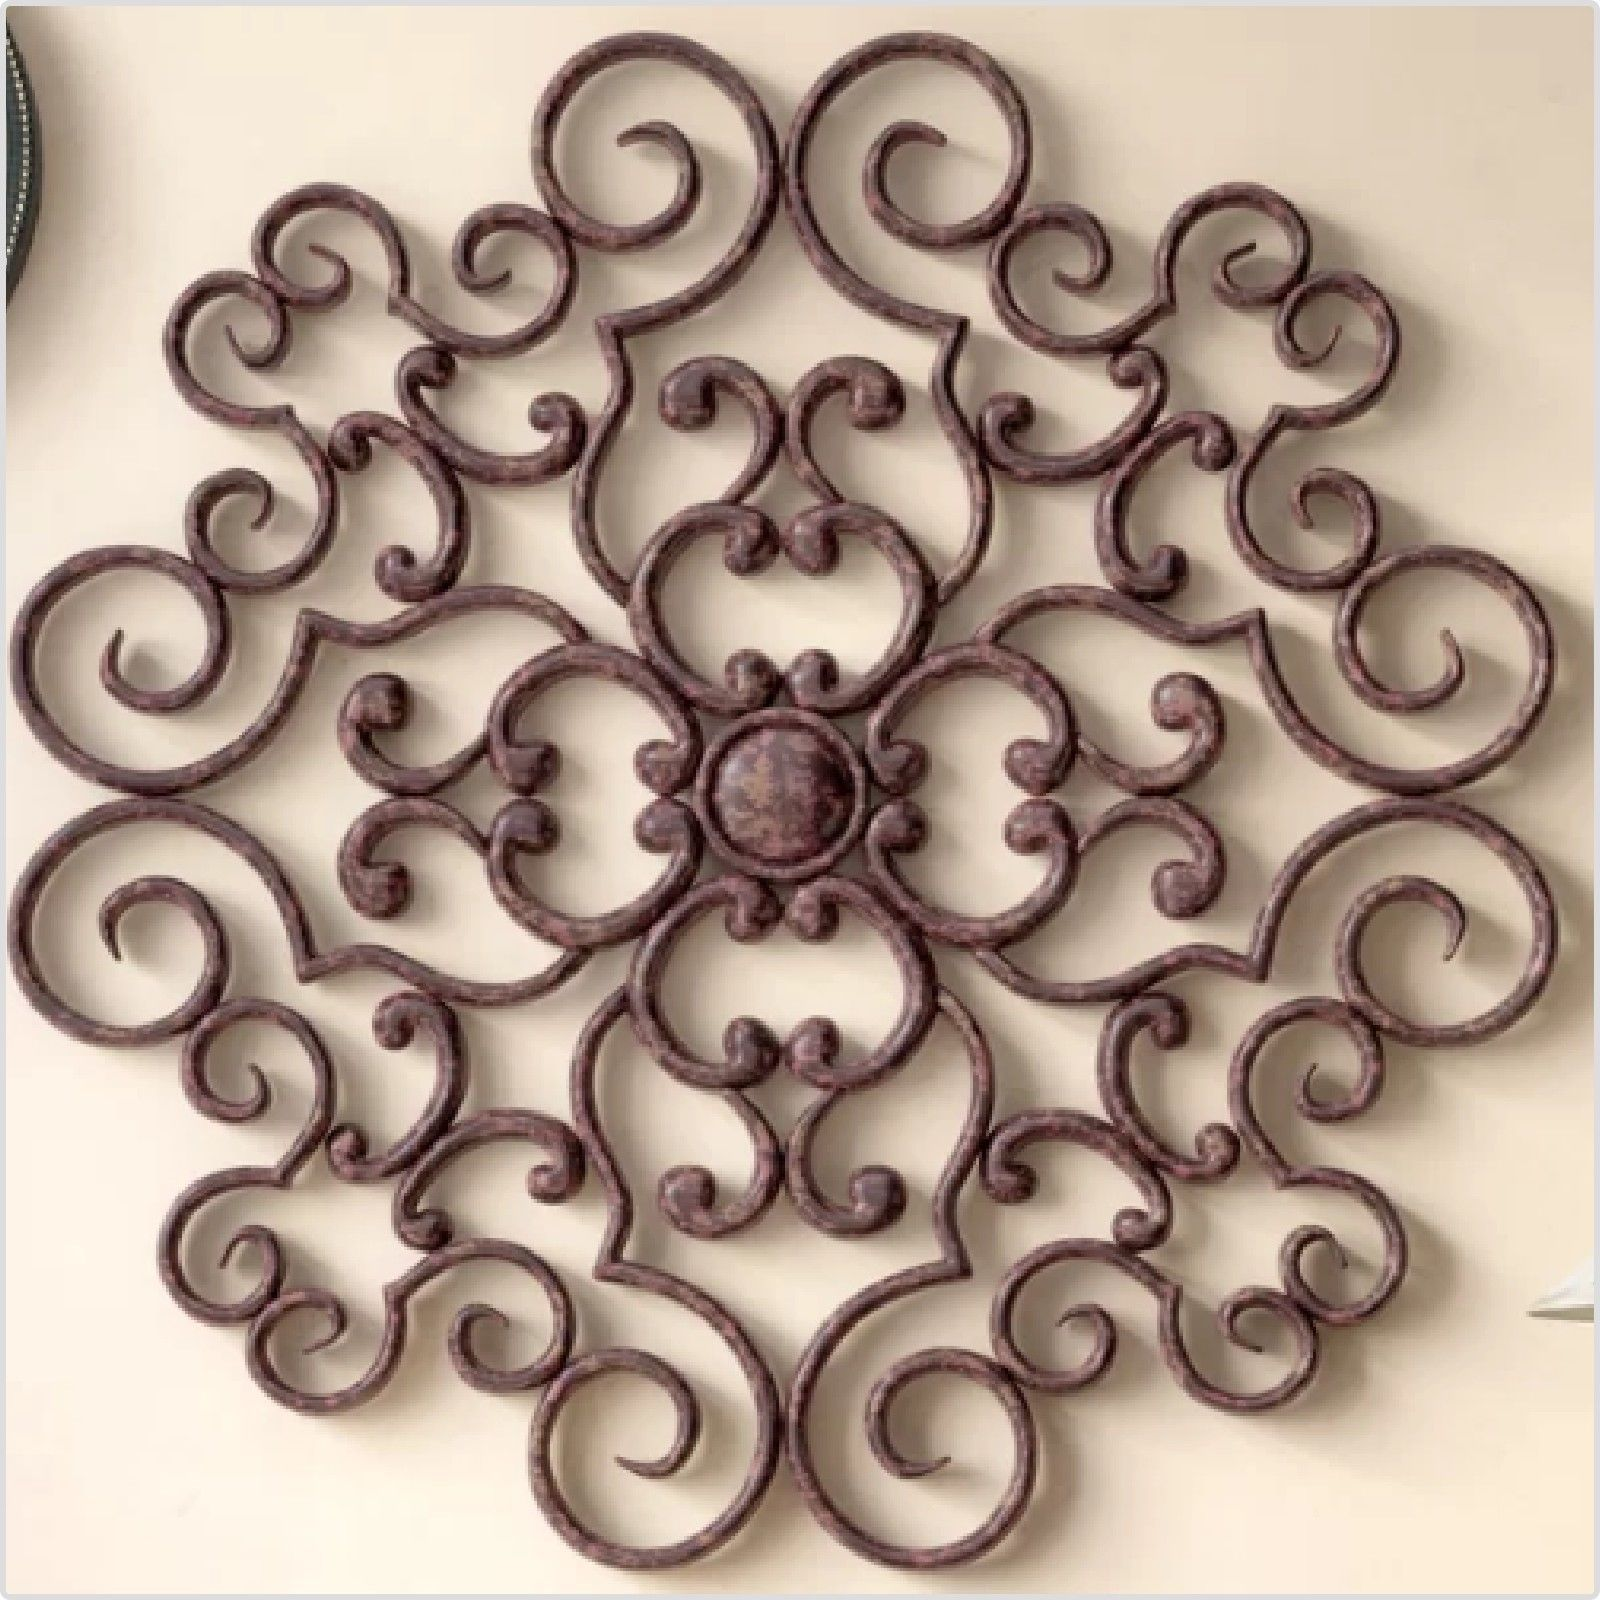 Handmade Wrought Iron Wall Bronze Large Sculpture Victorian Style Vintage Decor Iron Wall Decor Iron Wall Mediterranean Wall Decor